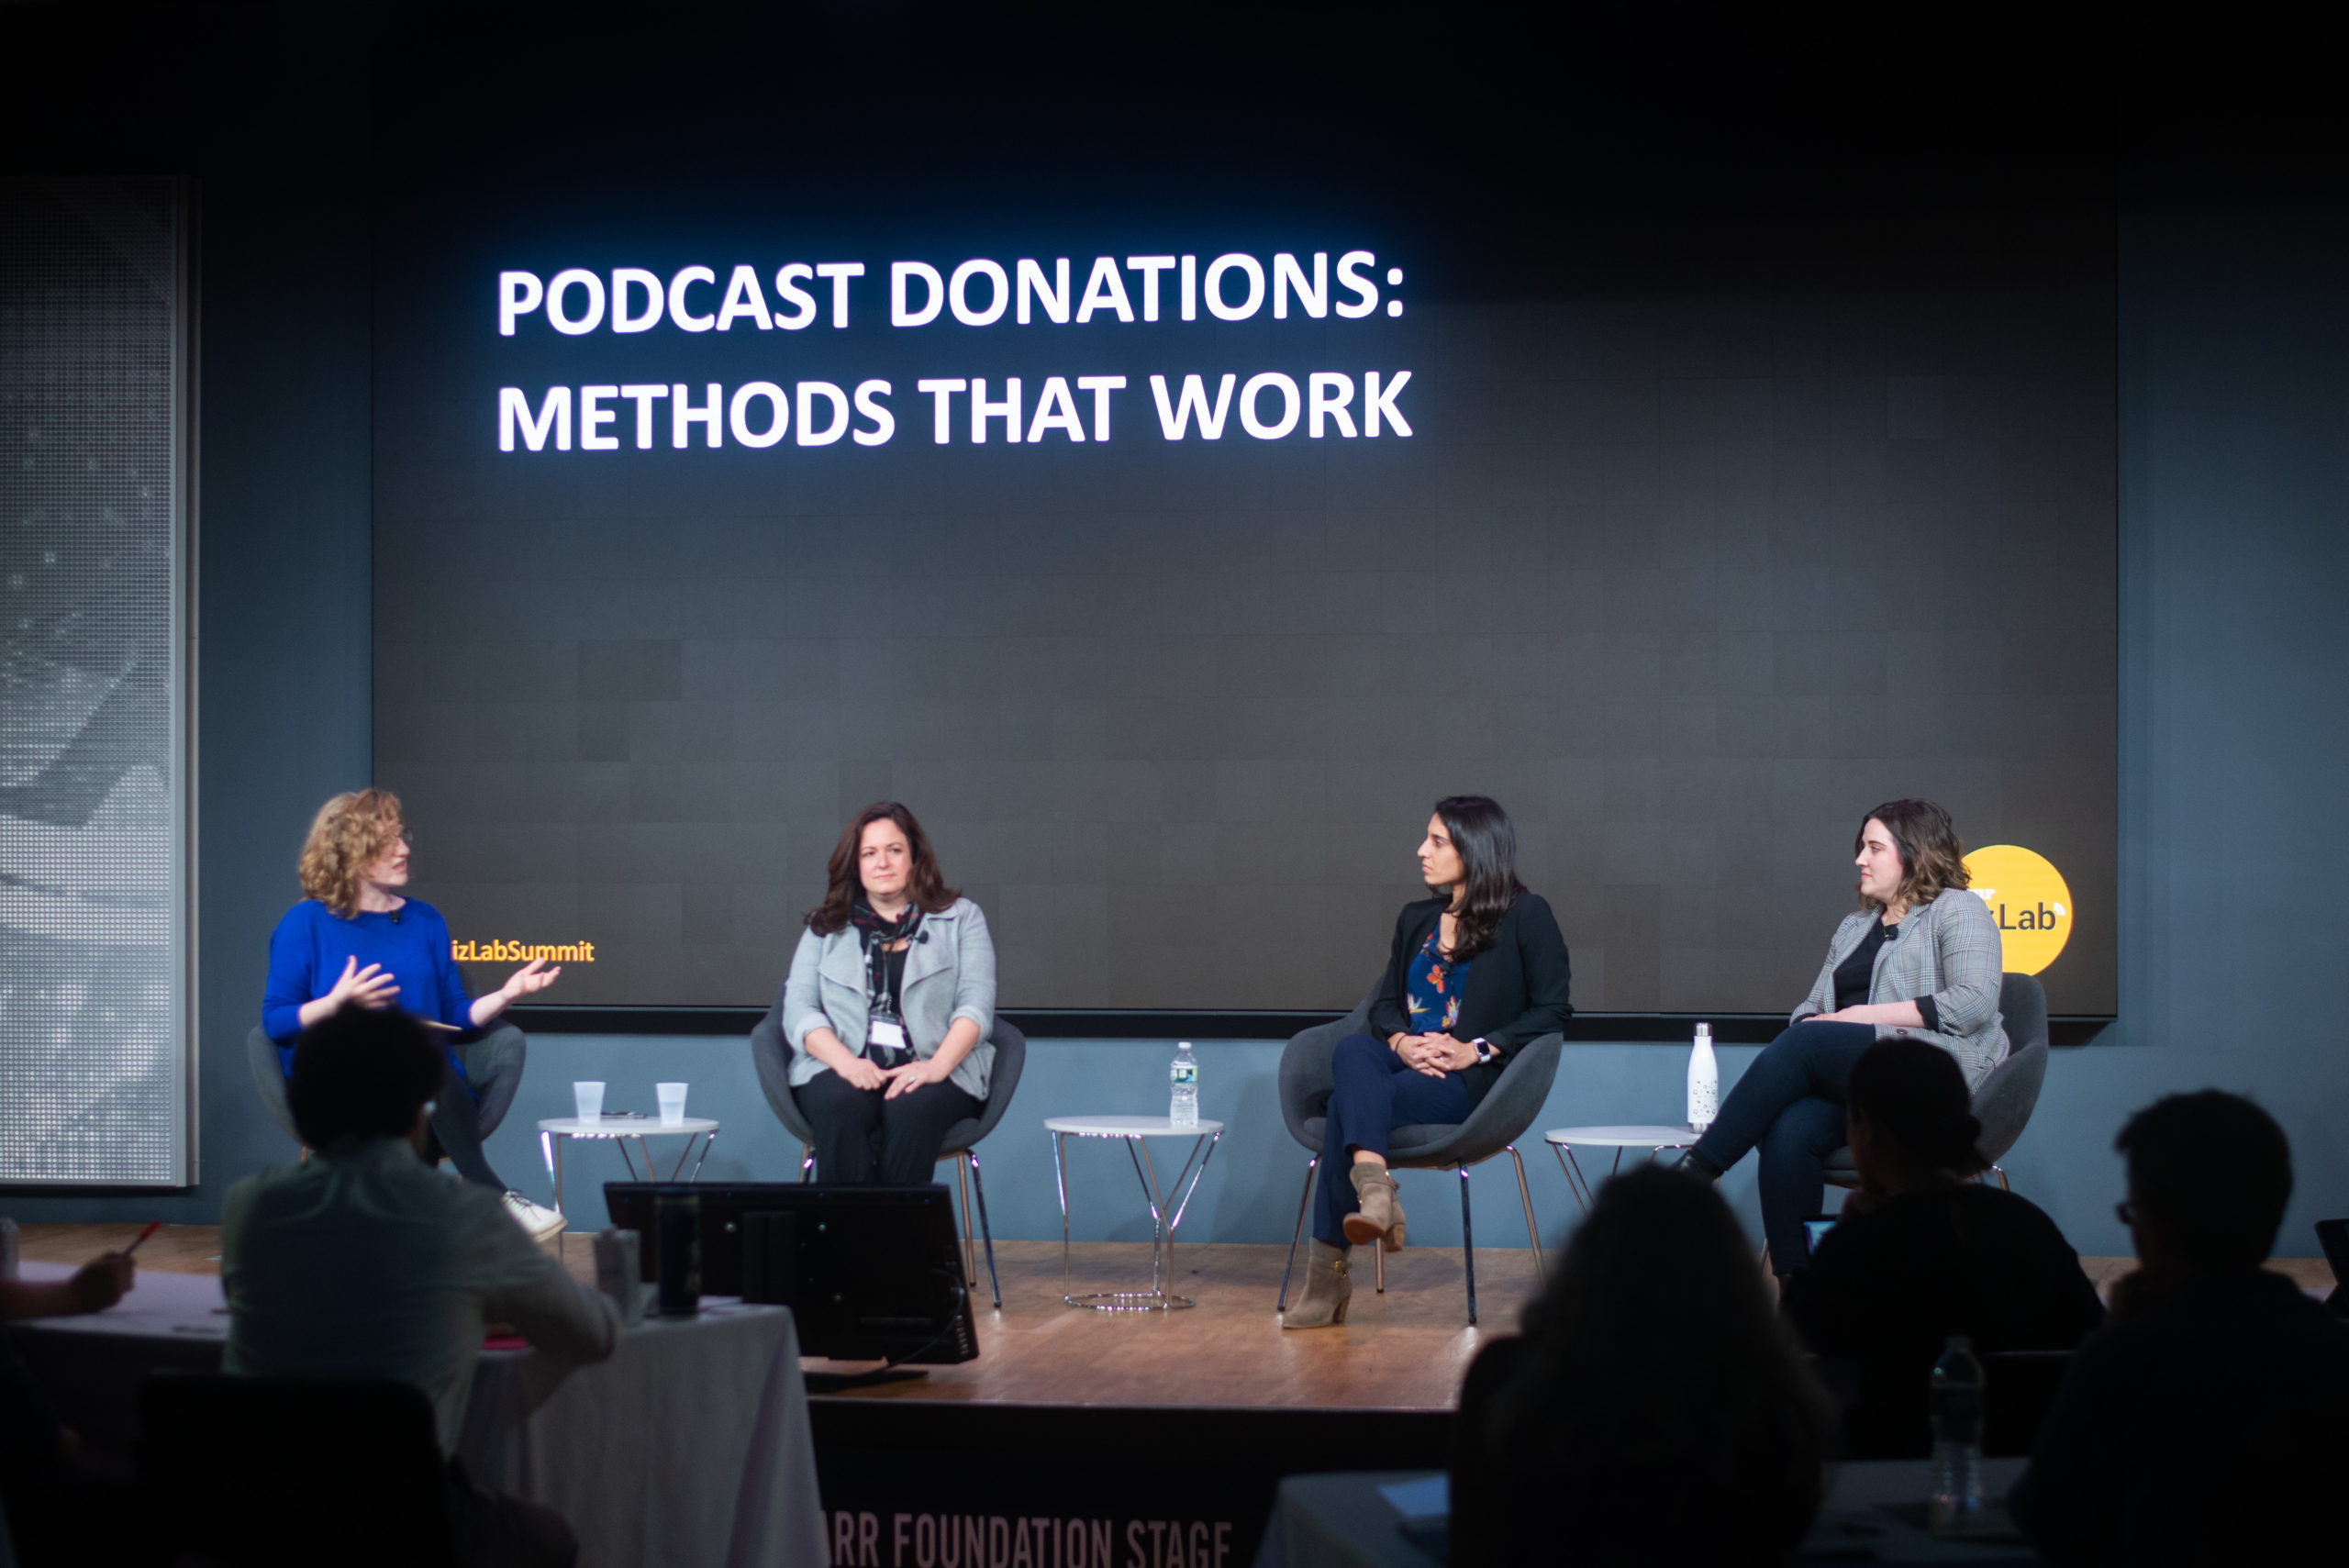 Panel – Podcast Donations: Methods that Work